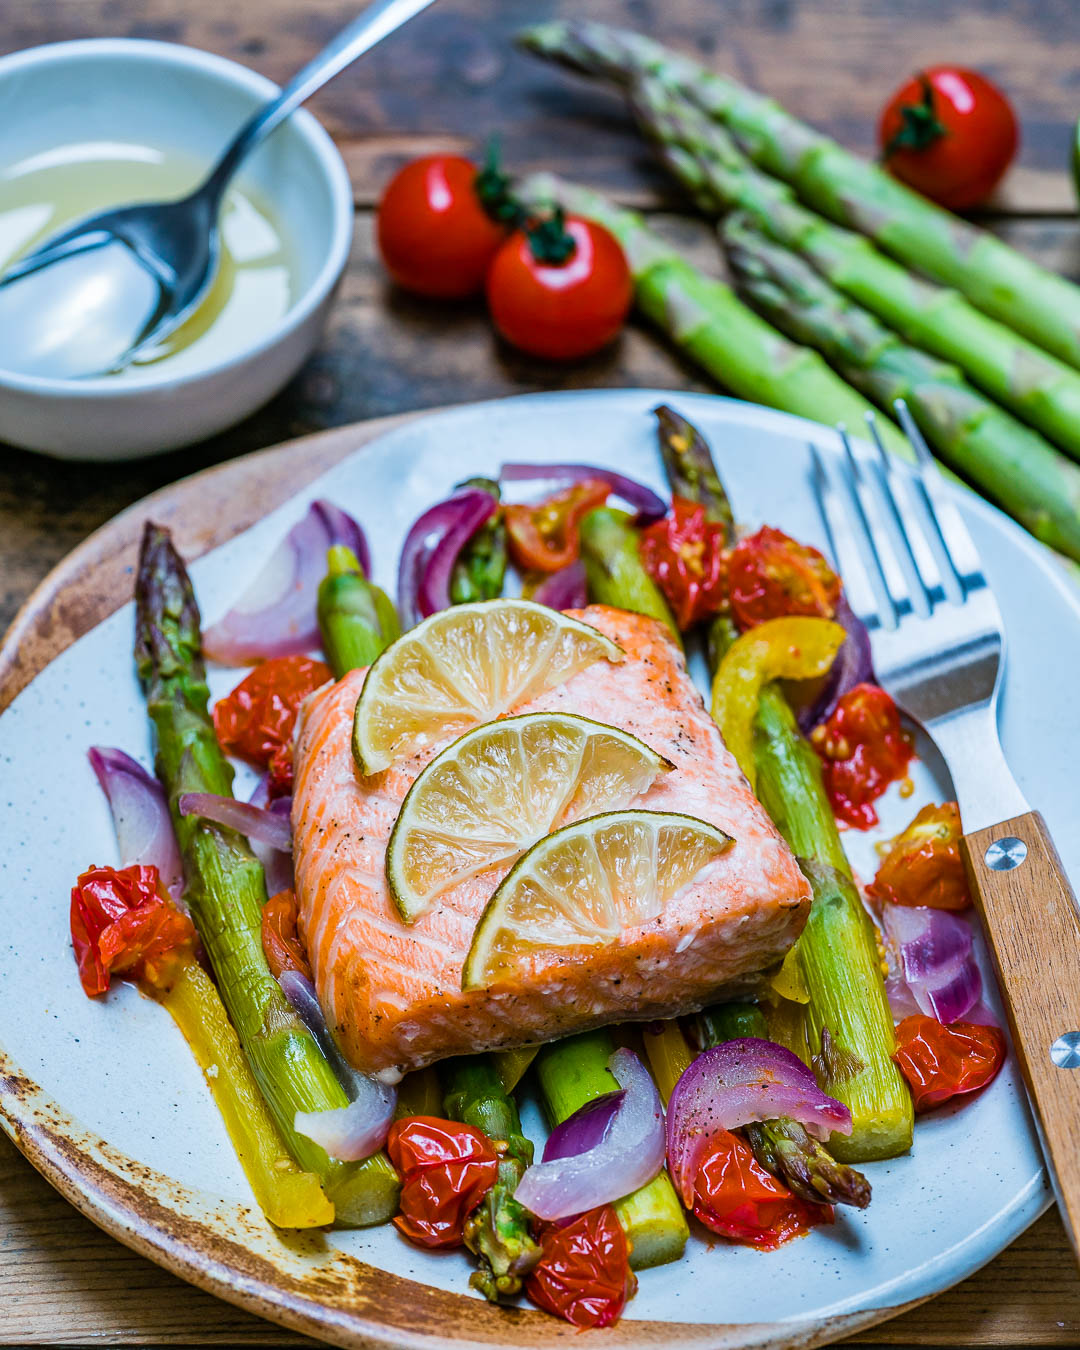 Easy Baked Salmon and Veggies Recipe - How to Cook Salmon In The Oven-8